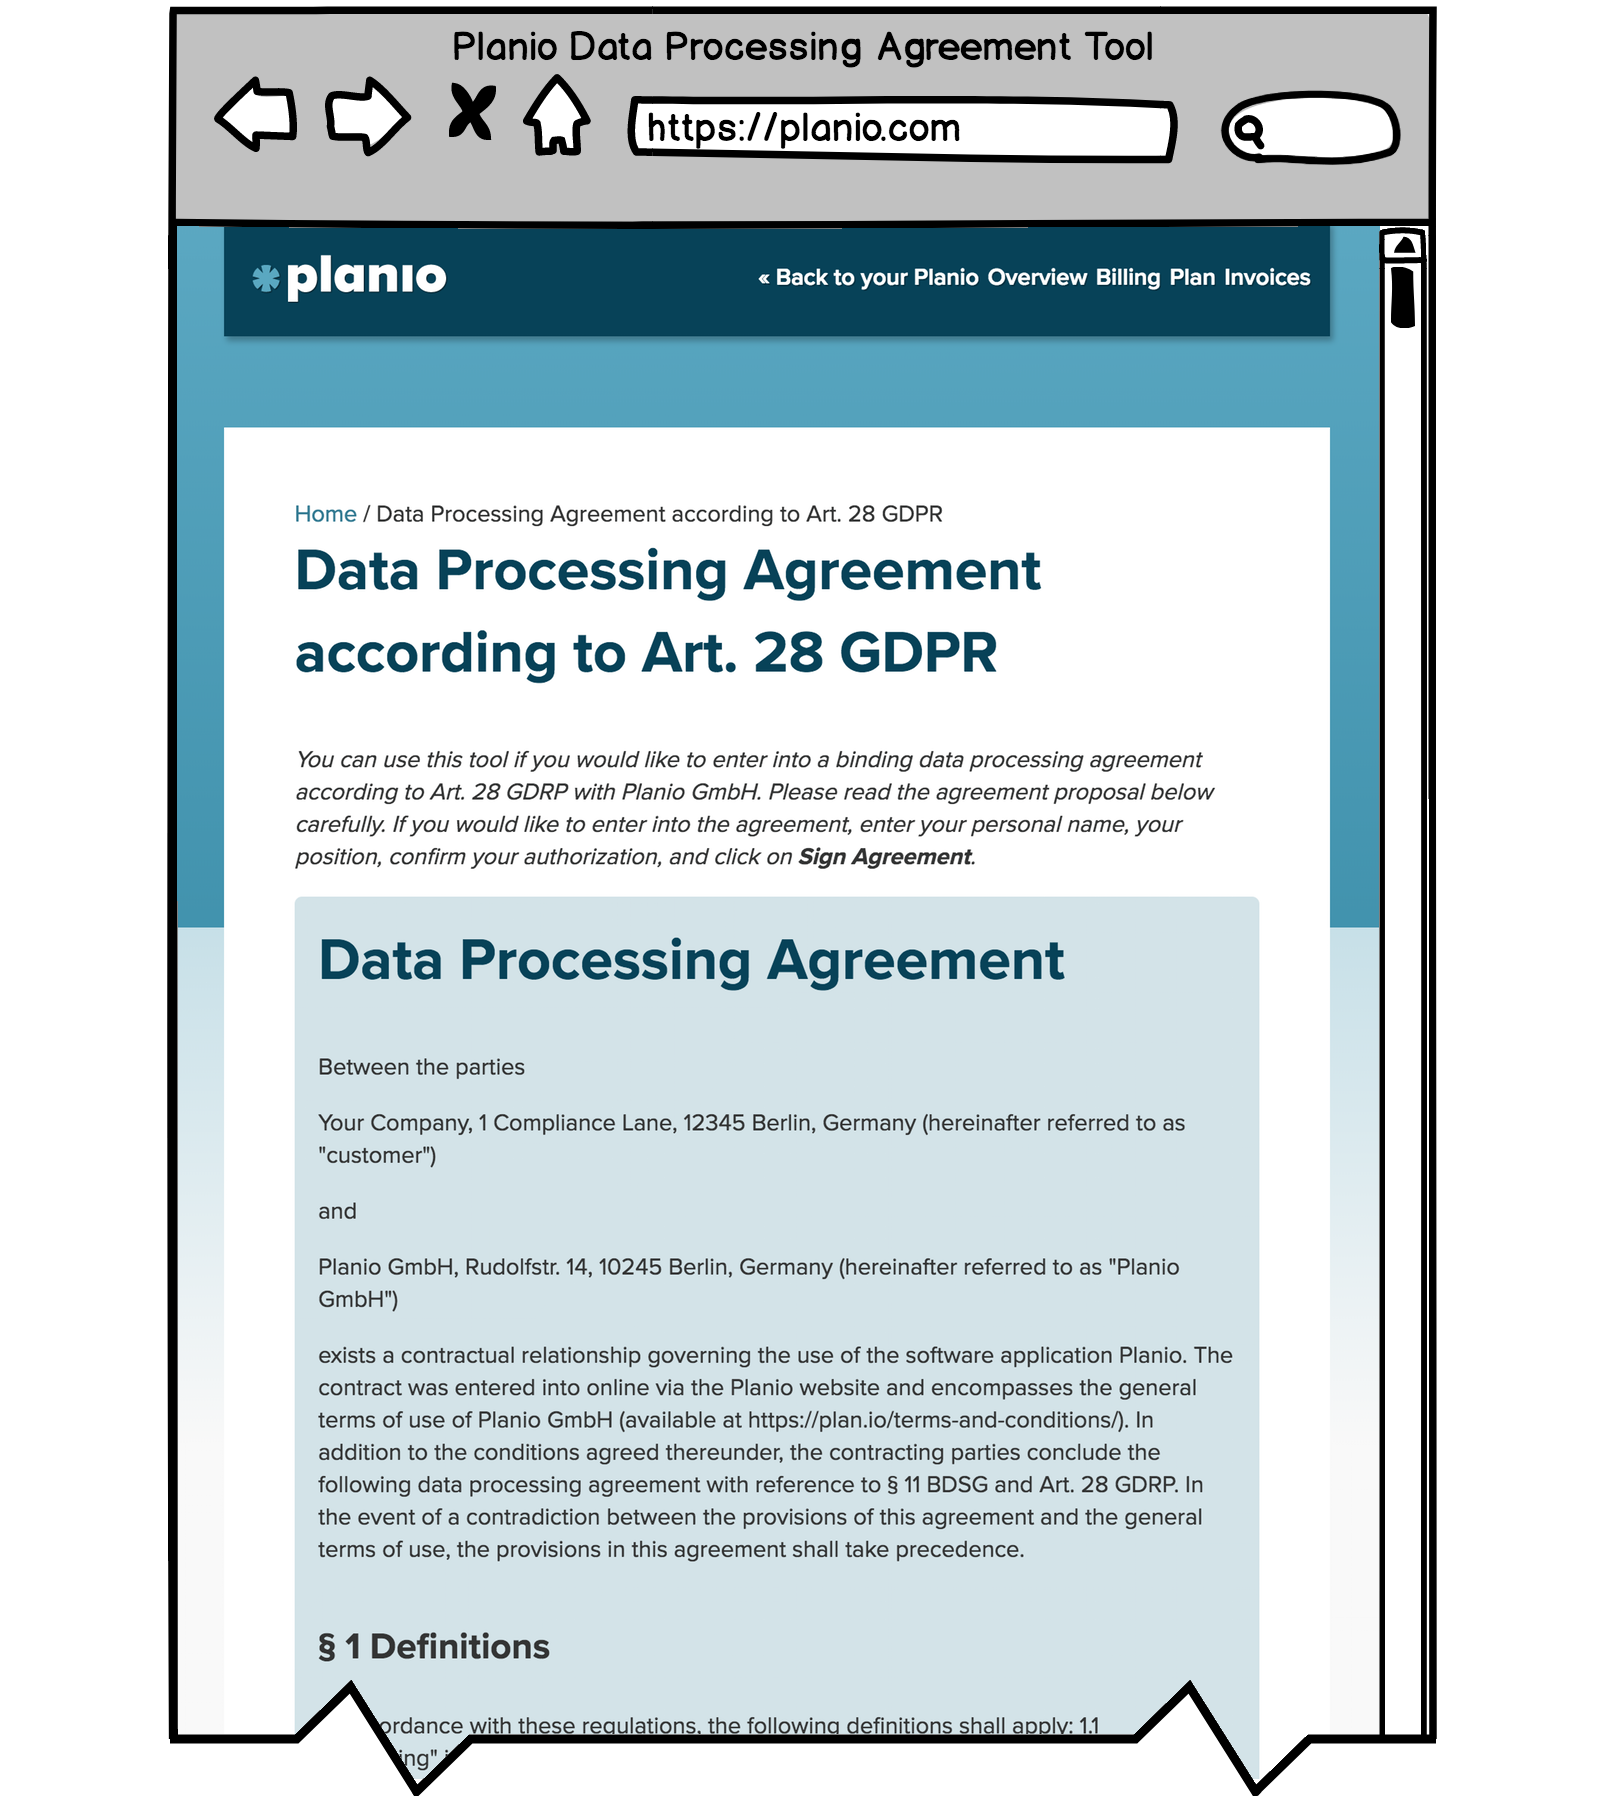 data processing midterm Data processing addendum we have updated our data processing addendum (dpa) in accordance with article 28 - which now contains additional provisions to assist our customers with their compliance with the gdpr.